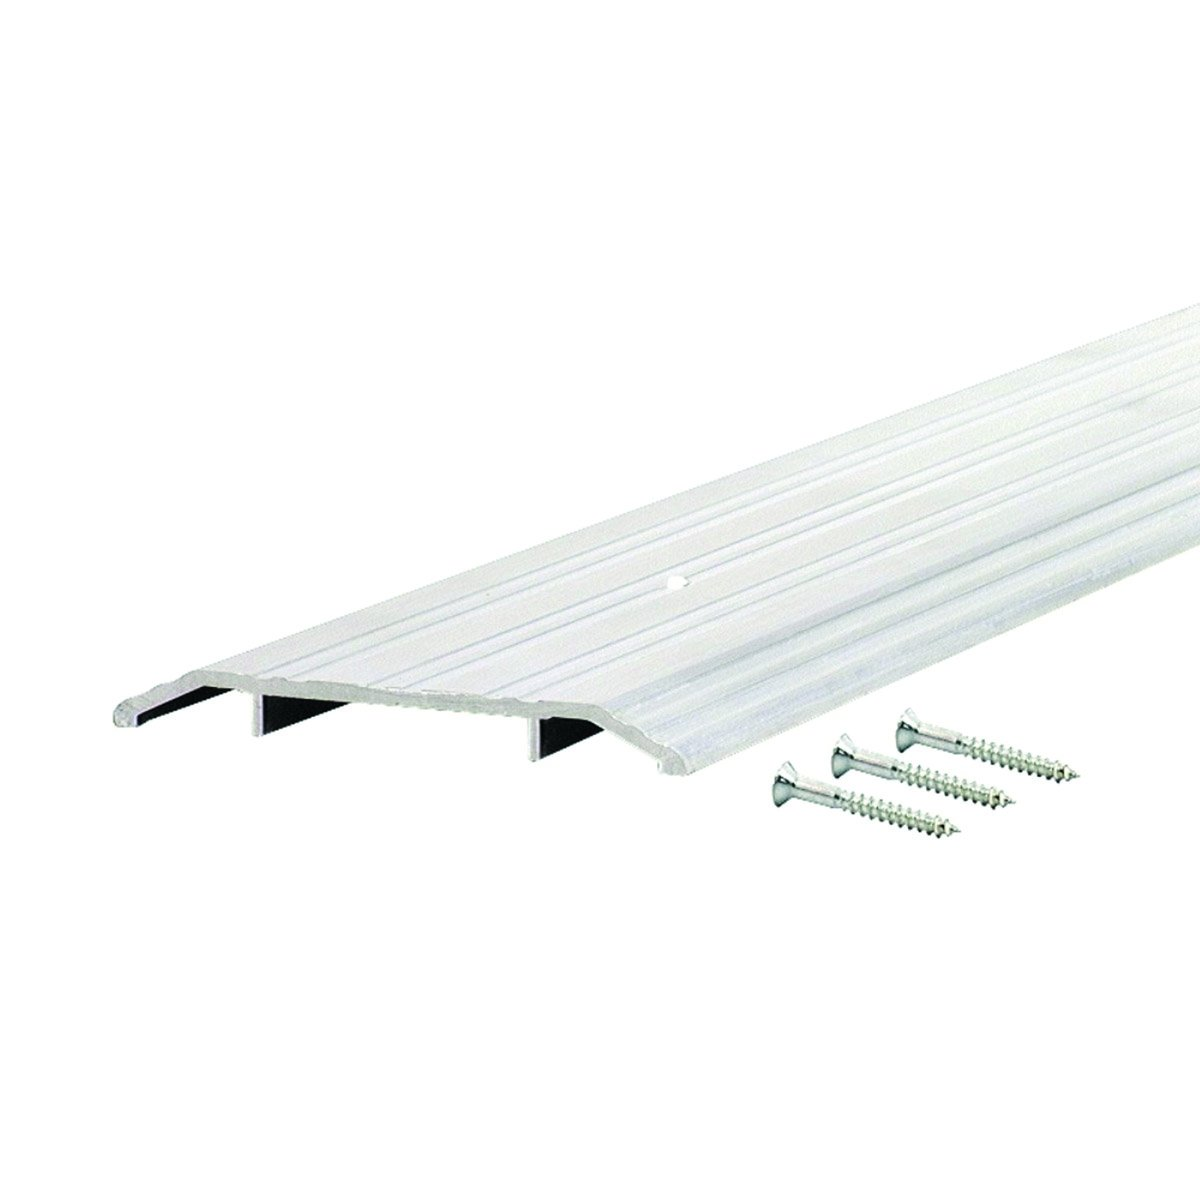 Commercial 5'' Wide Fluted Top Aluminum Door Threshold - #99058 by Custom Door Thresholds (Image #1)